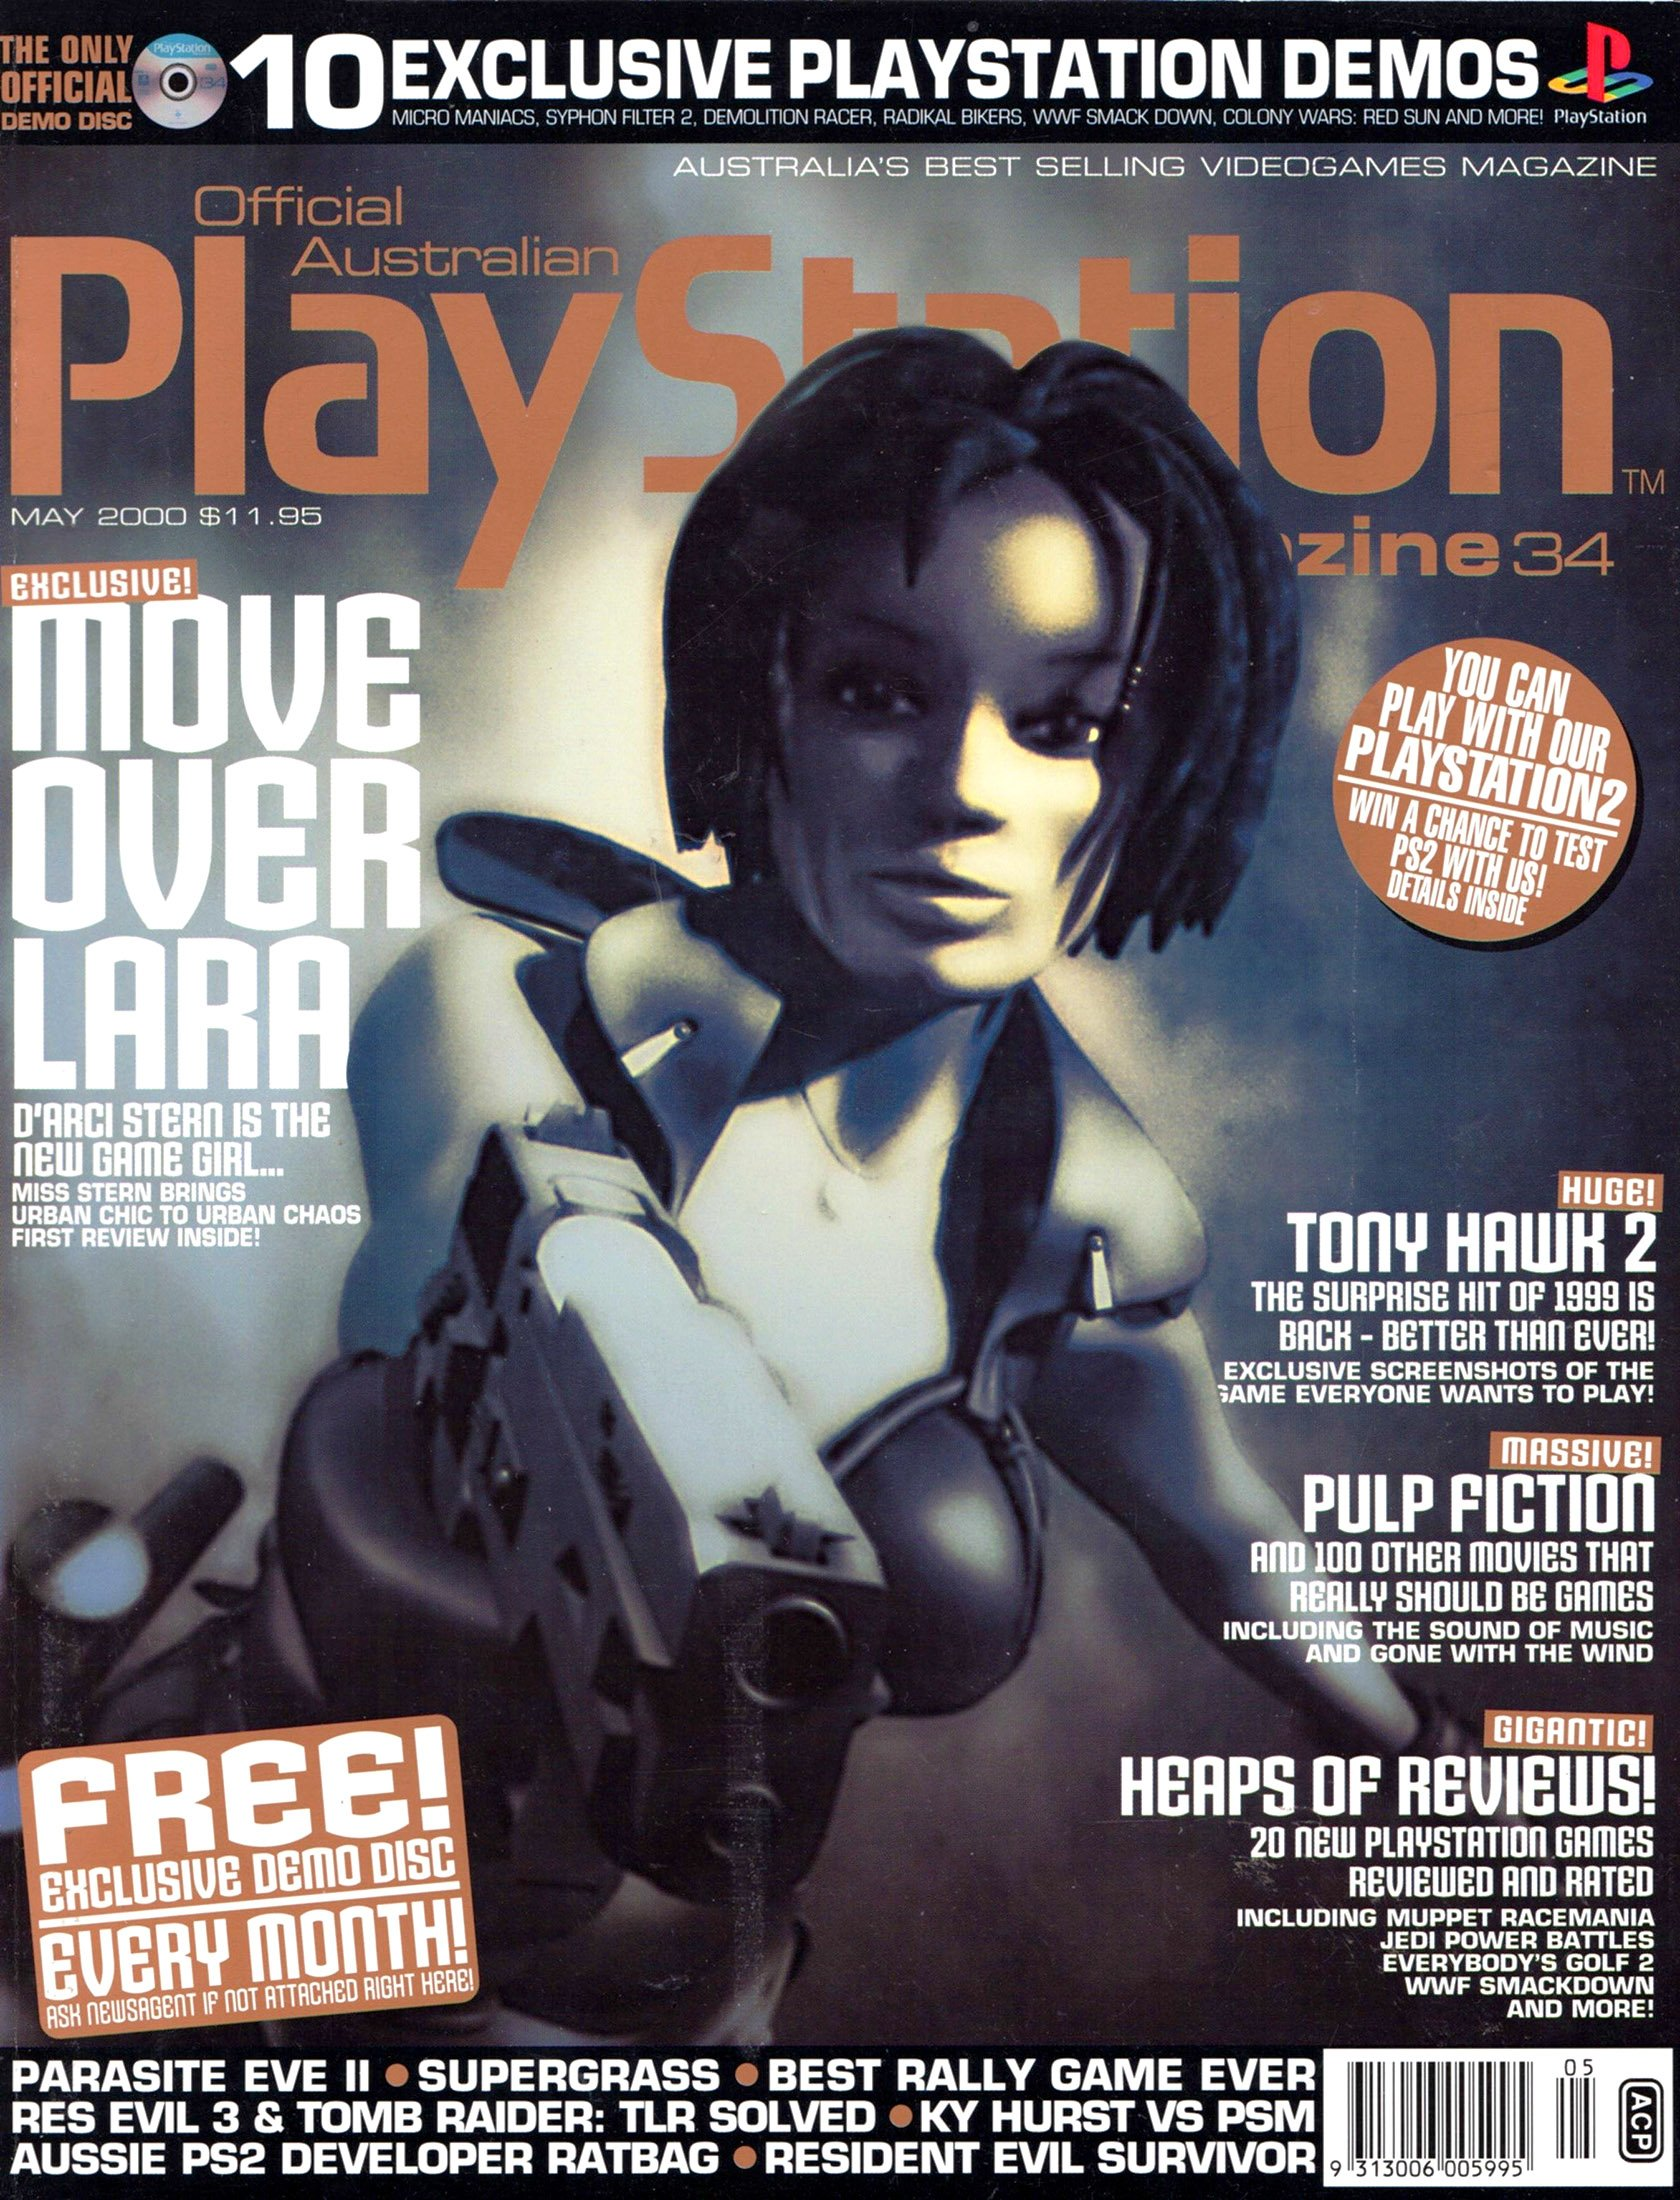 Official Australian PlayStation Magazine 034 (May 2000)